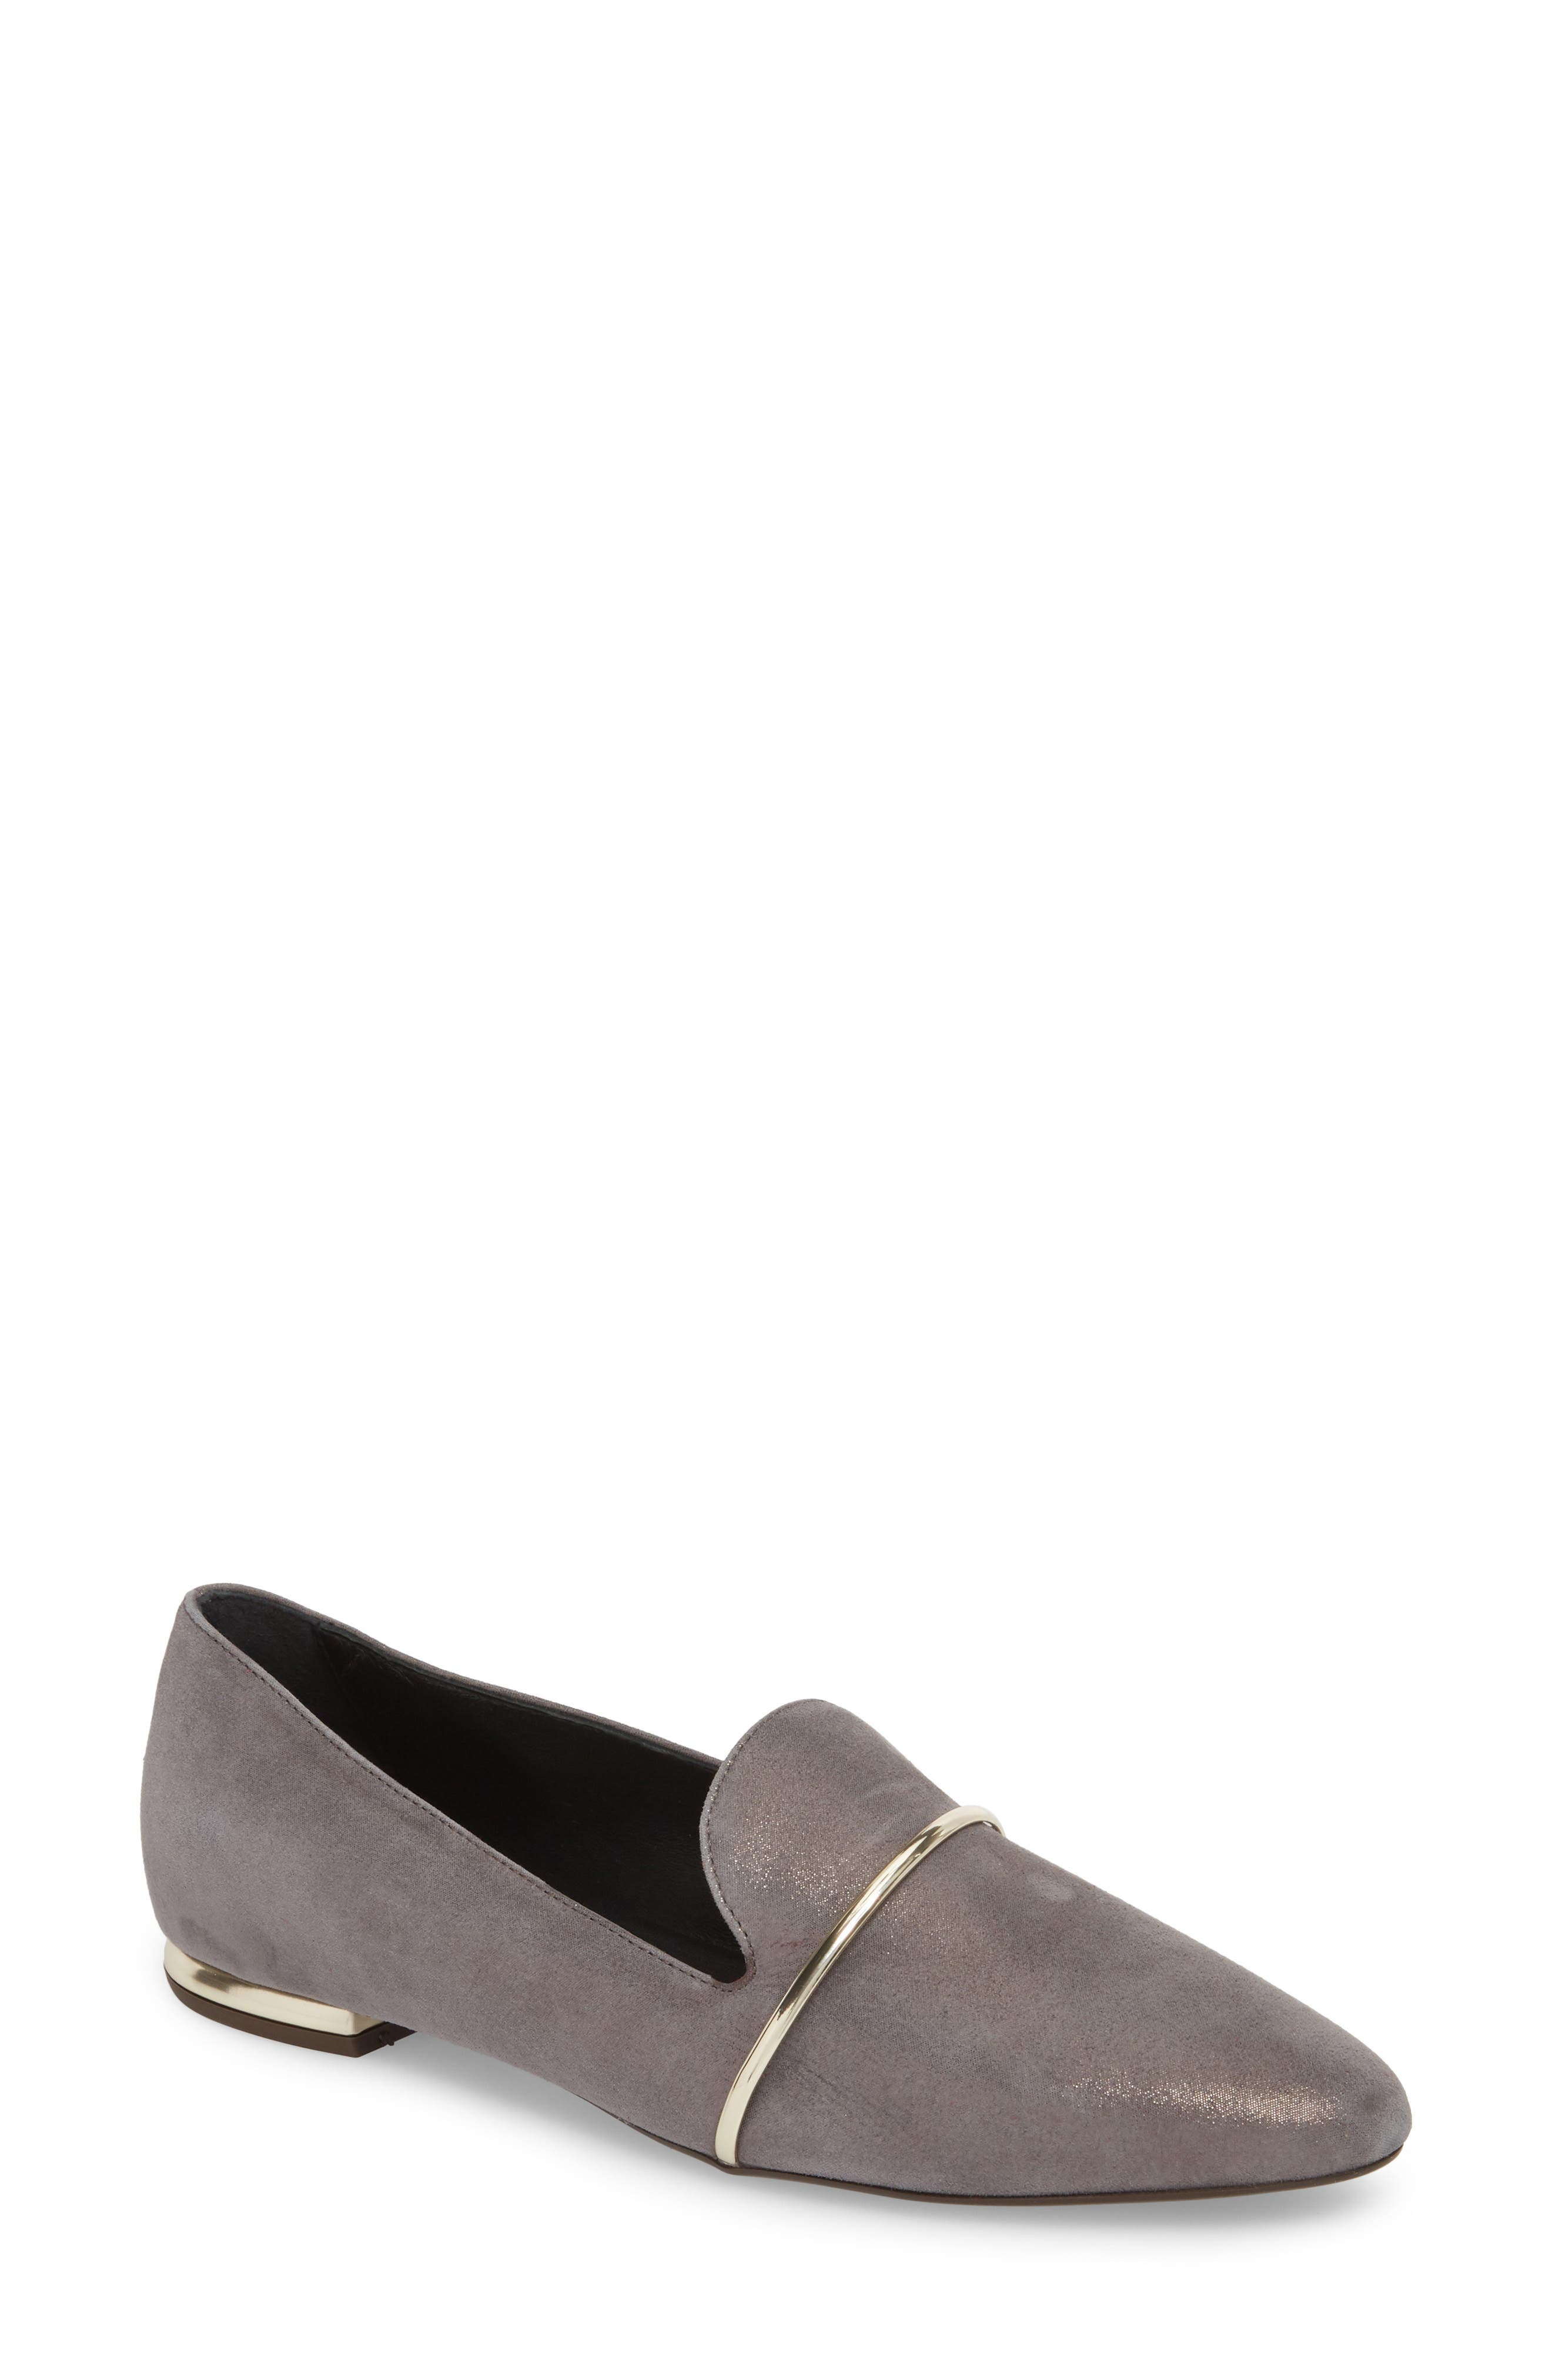 AGL ATTILIO GIUSTI LEOMBRUNI Smoking Slipper, Dalia Winter